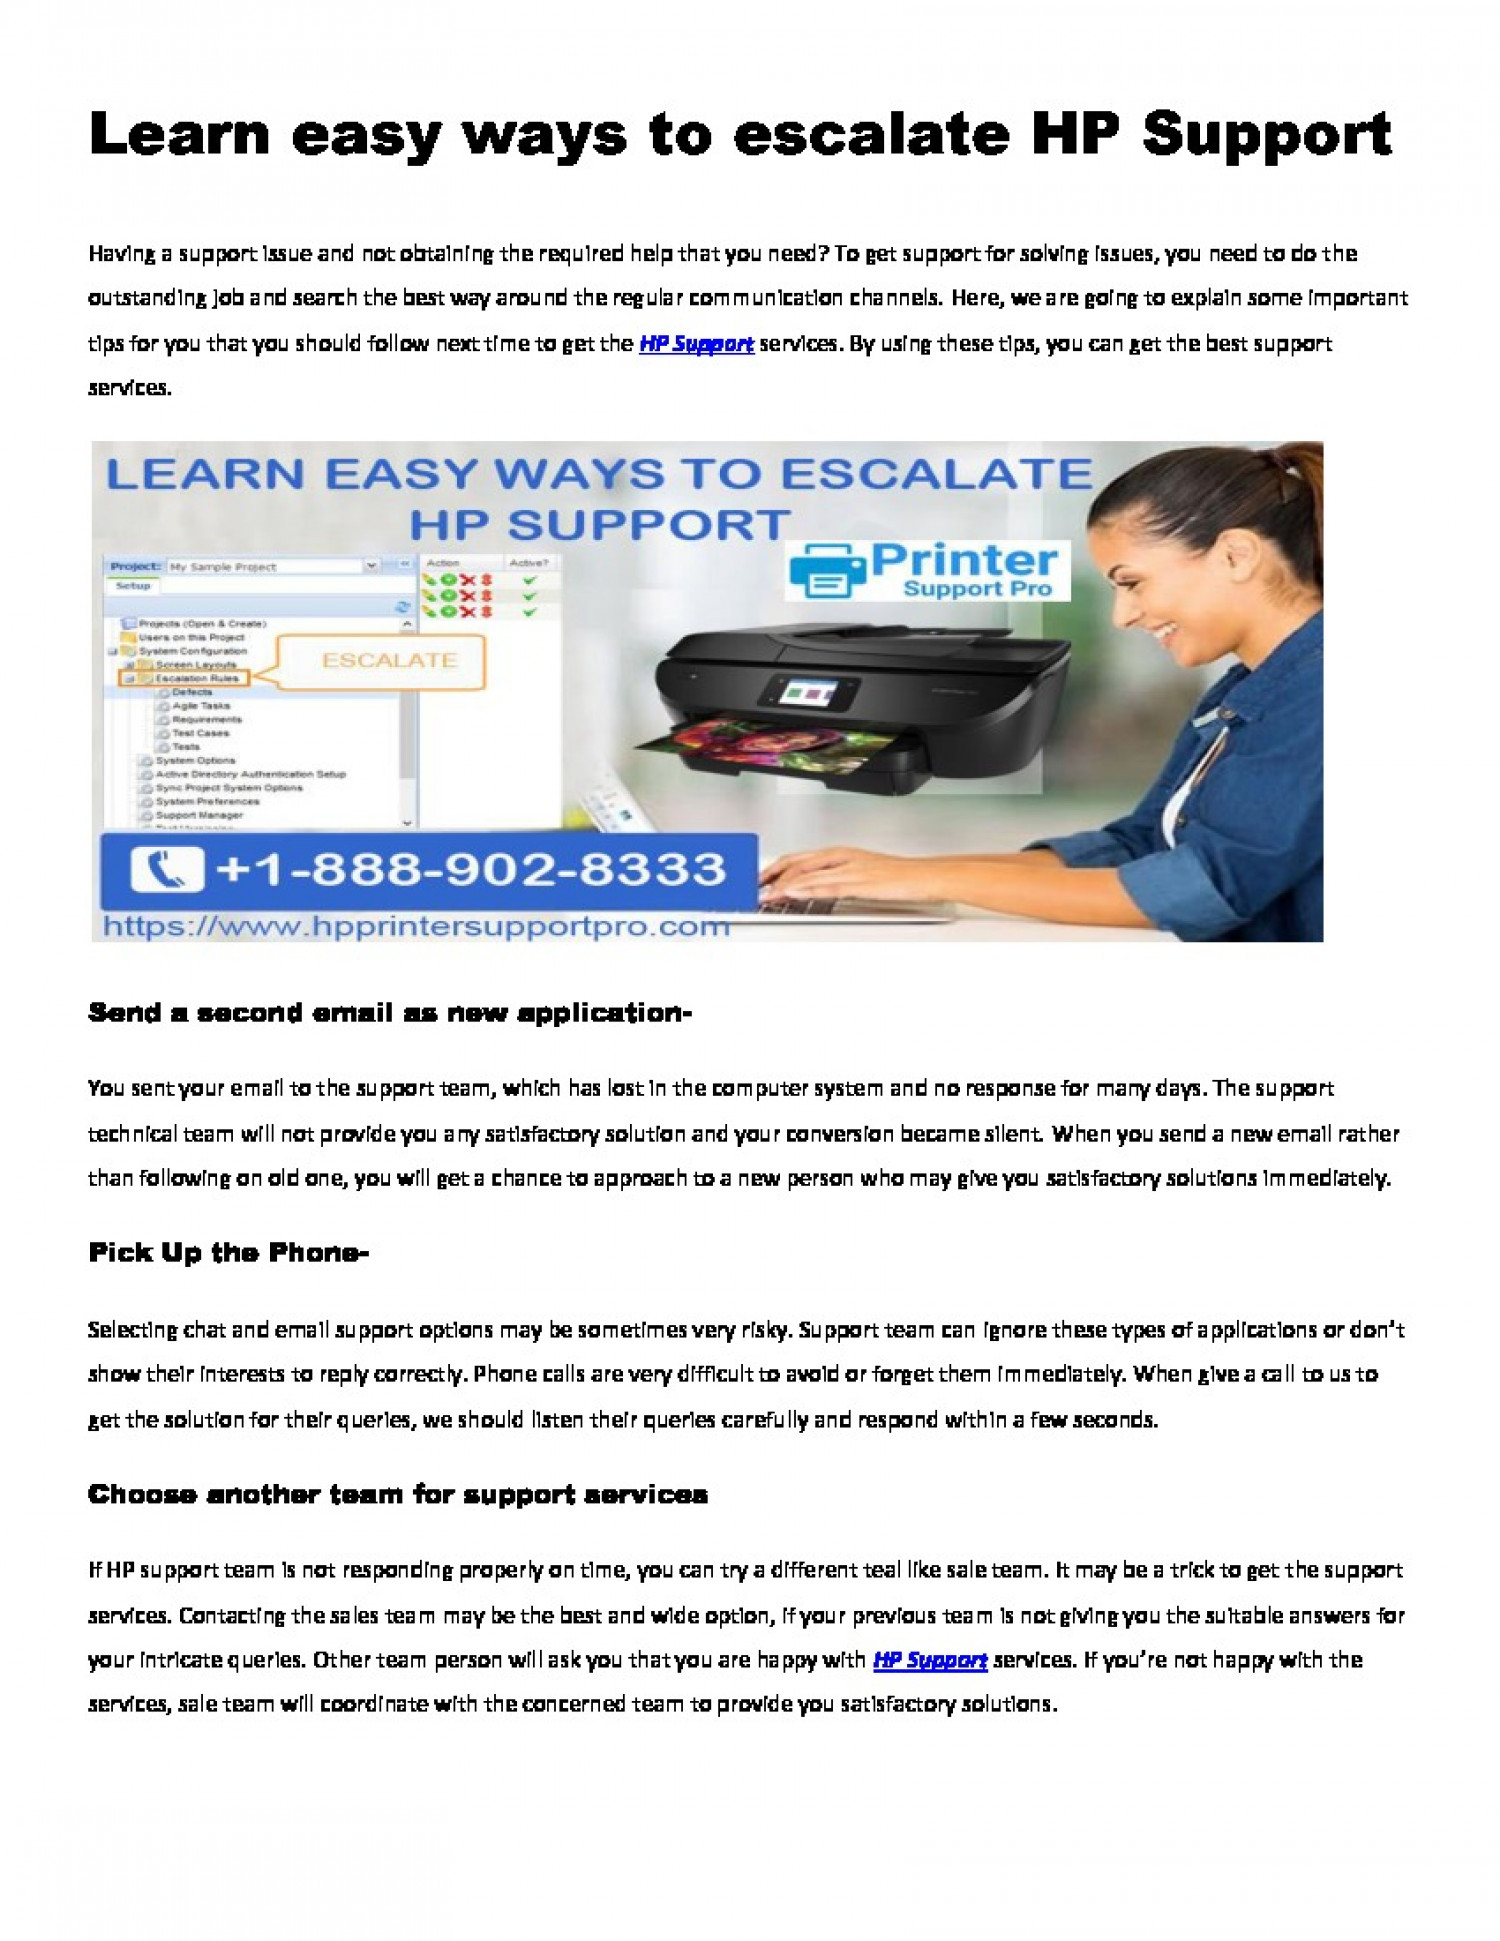 How do I contact HP support by chat? Infographic